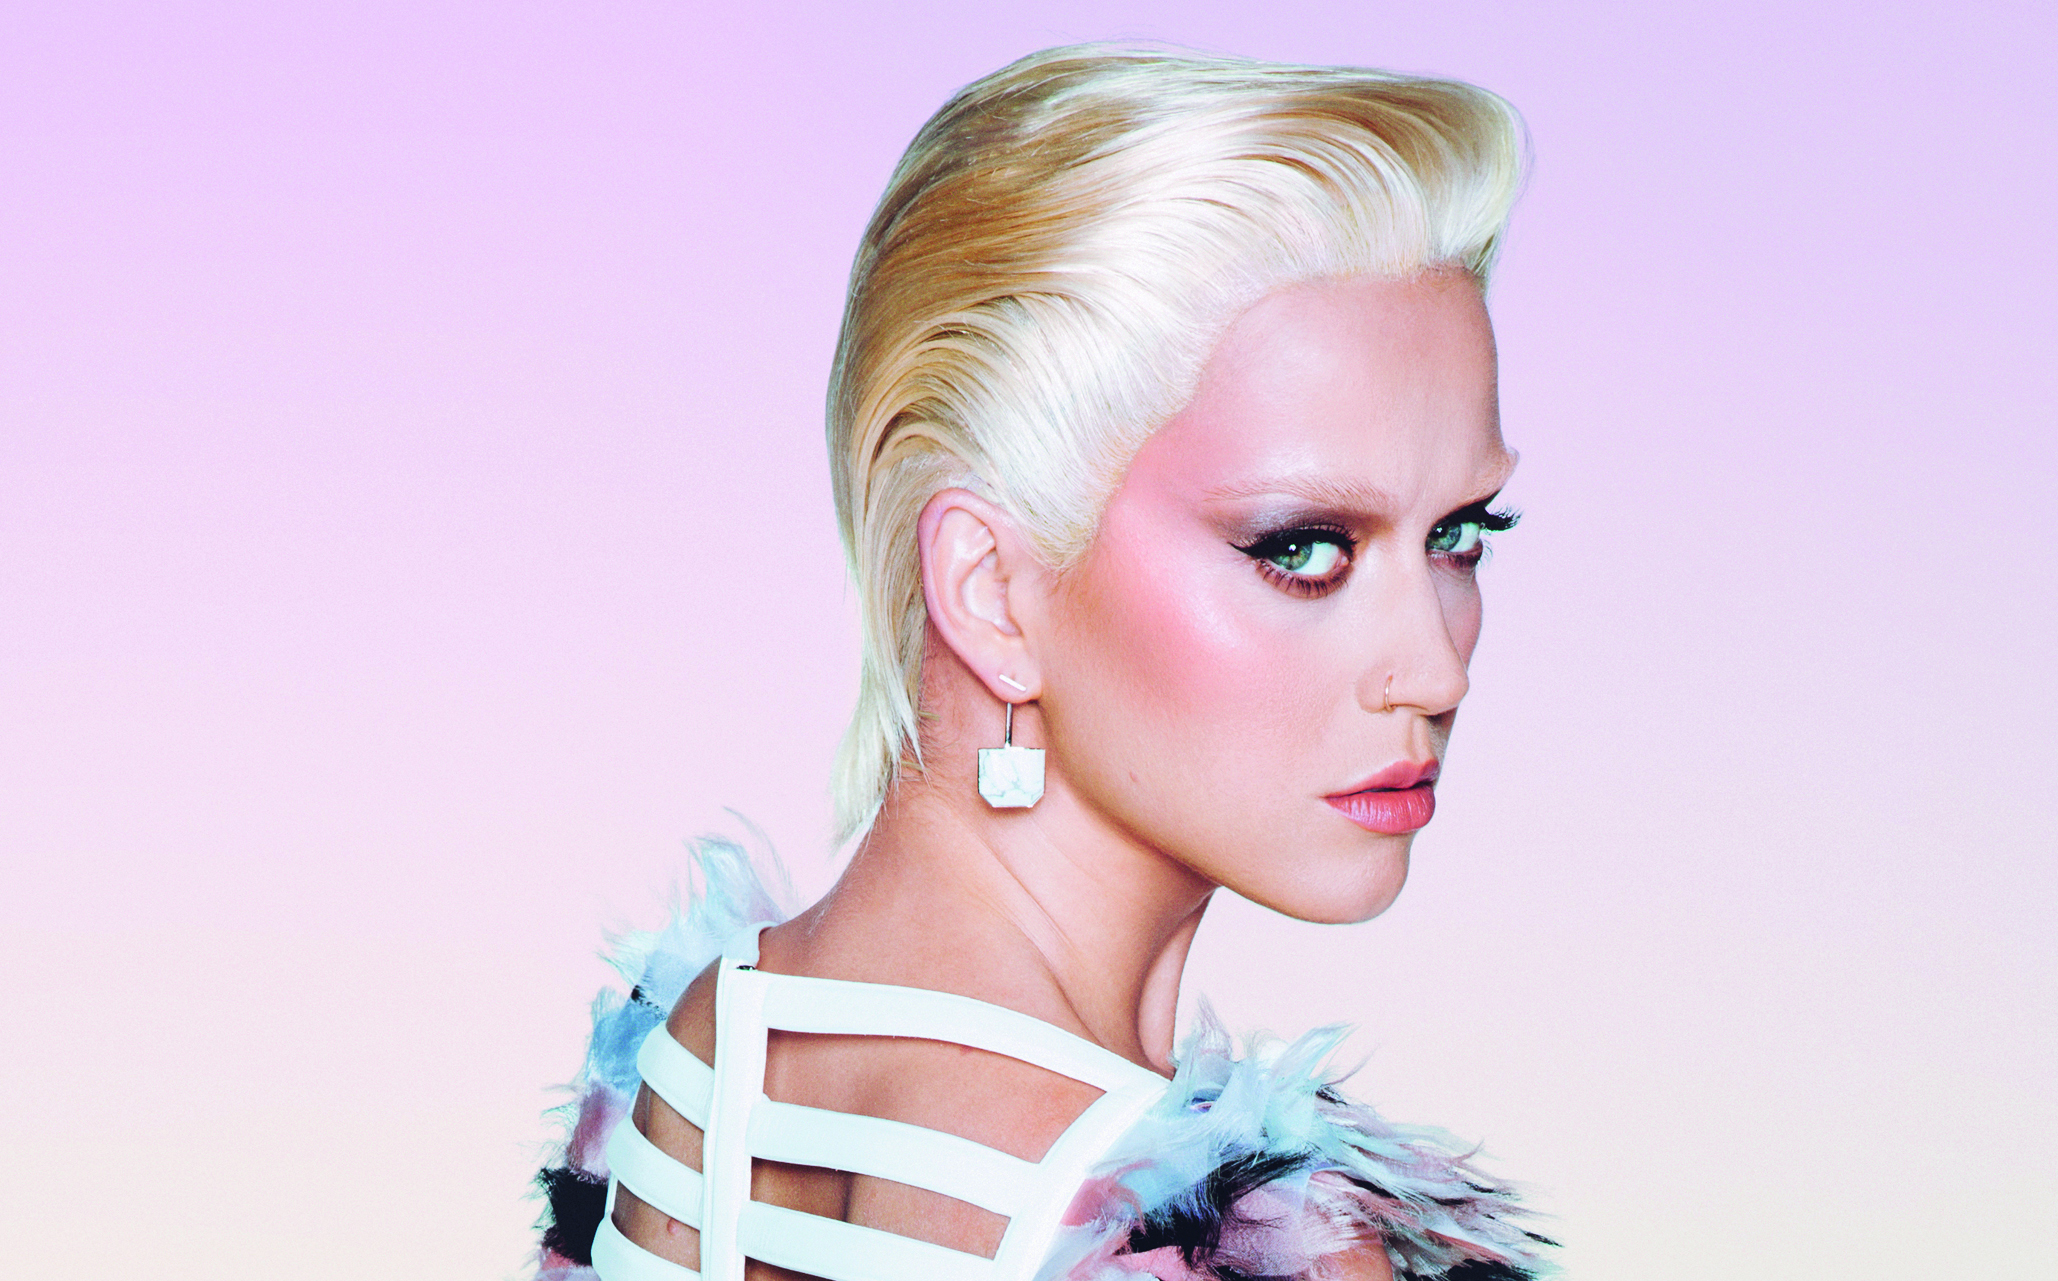 katy perry looks so different with bleached blonde